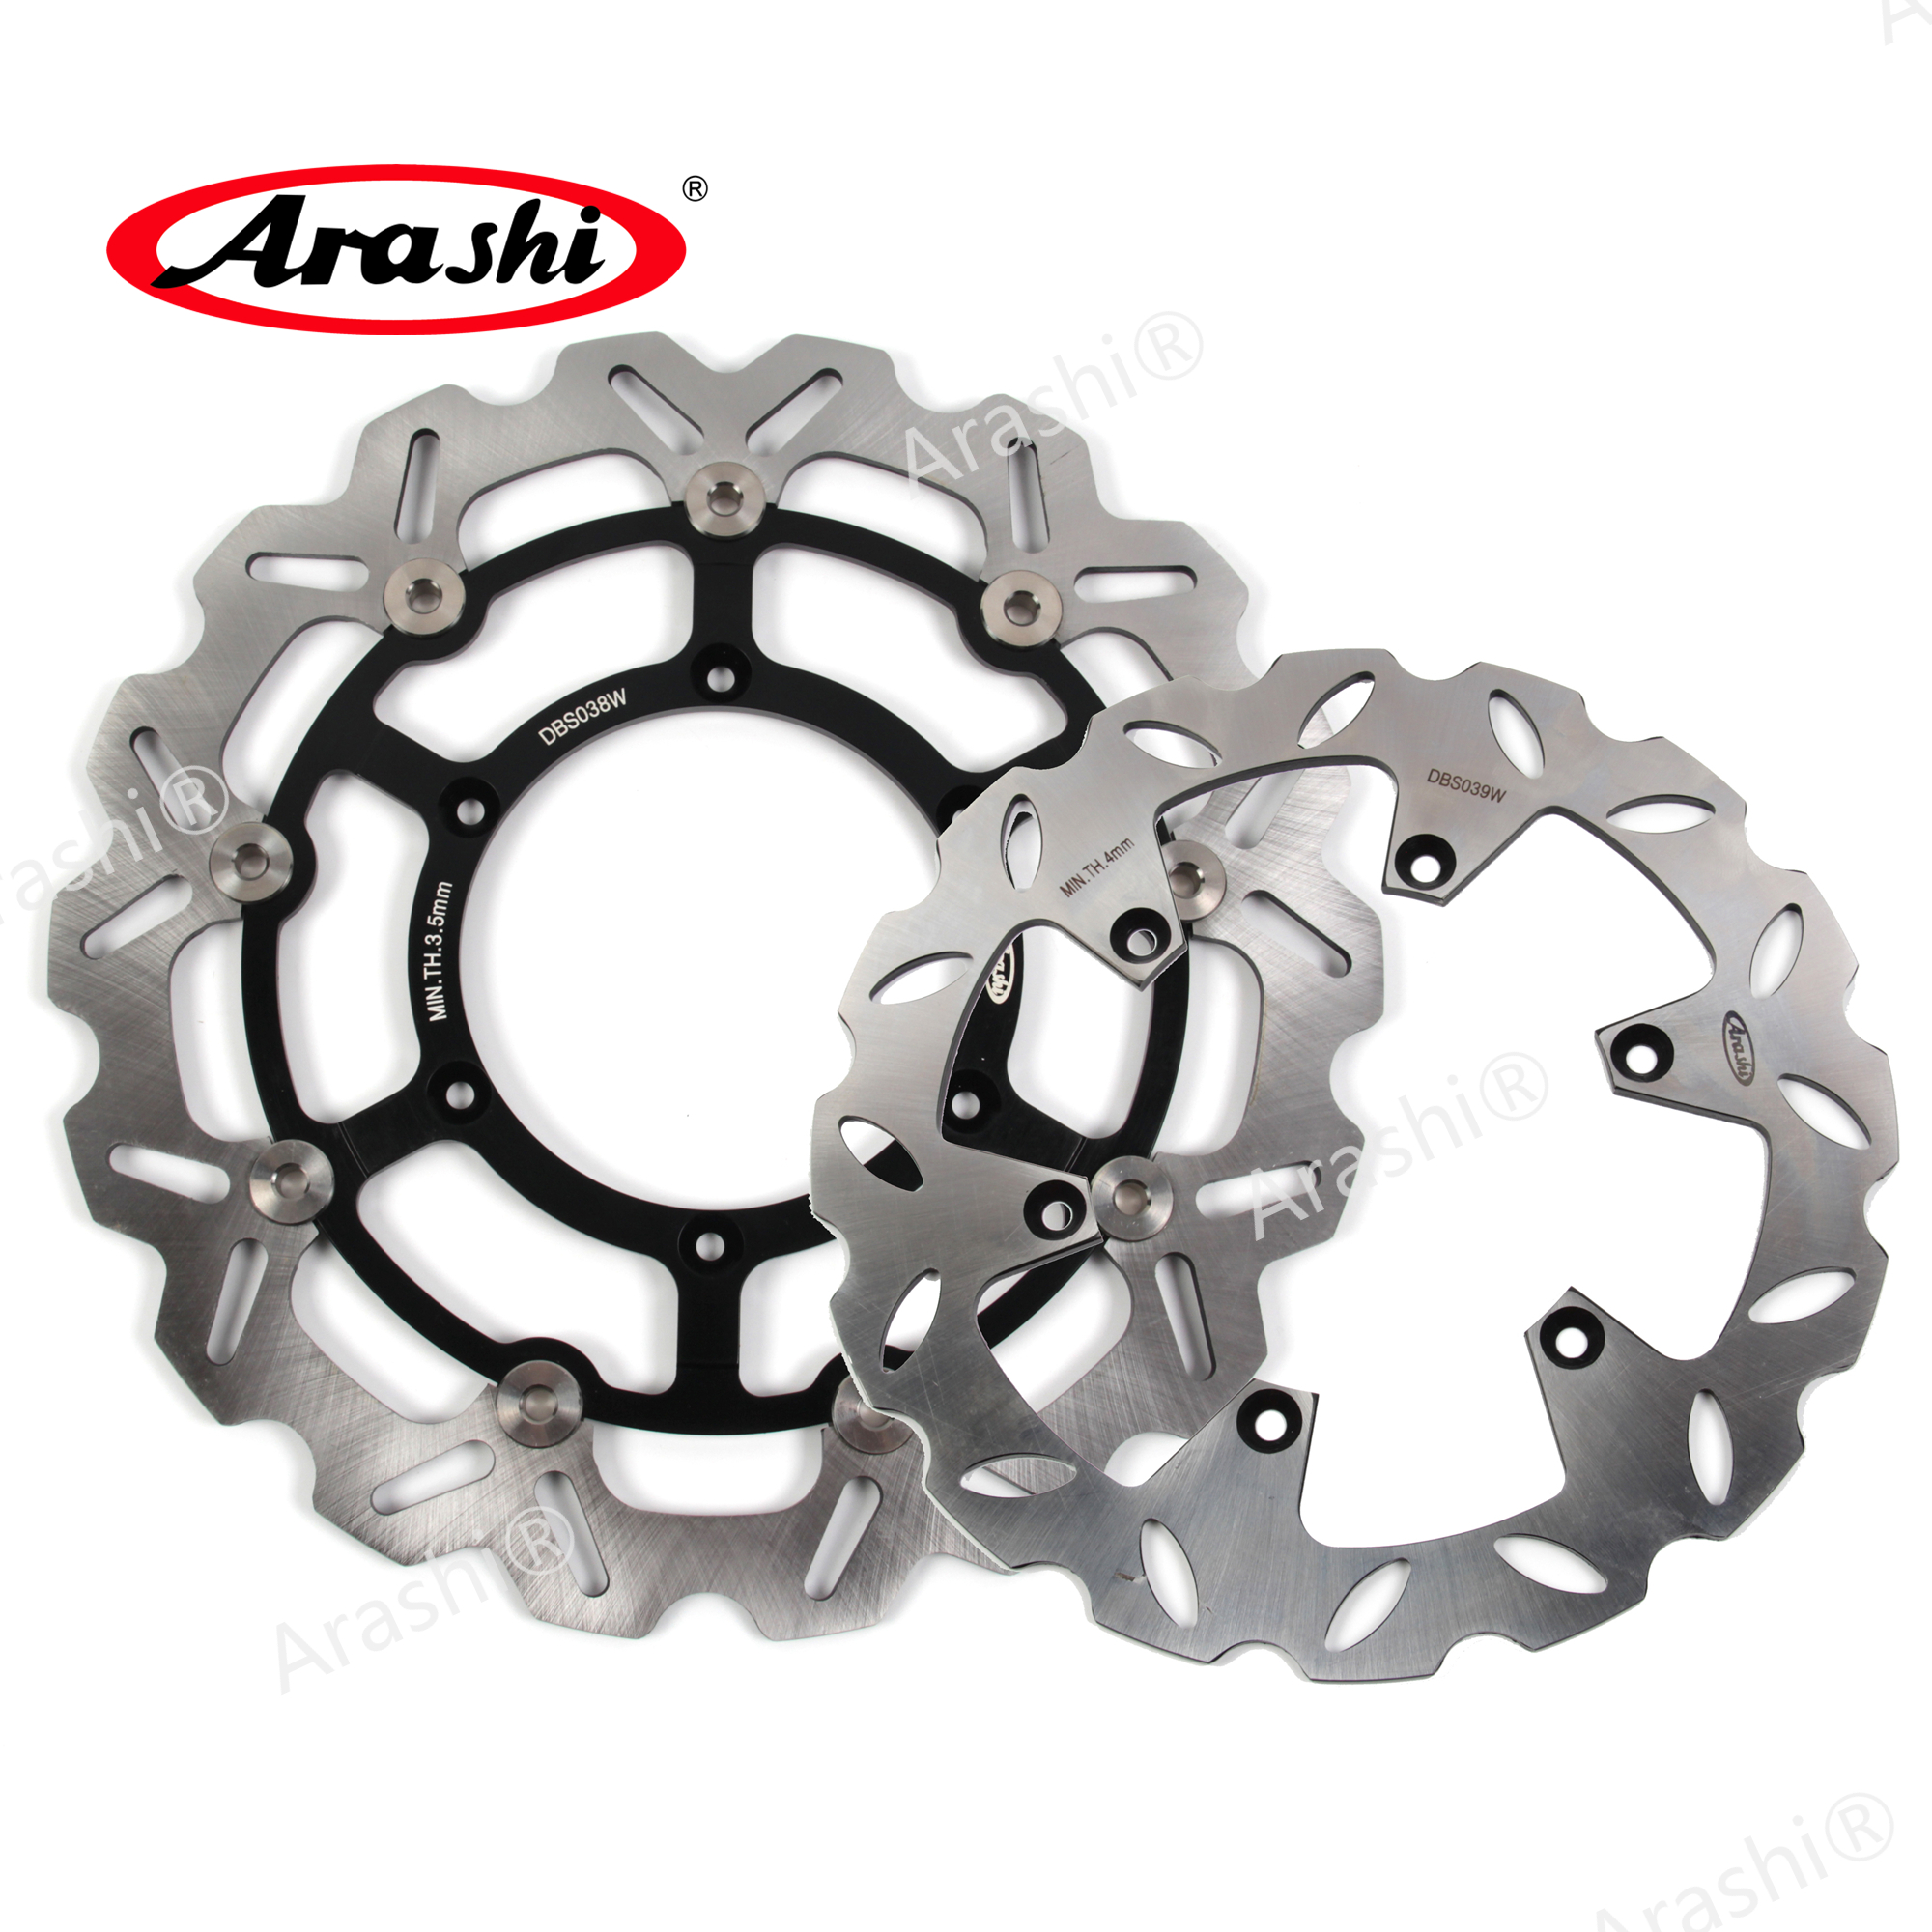 Arashi 1 Set DRZ 400 SM CNC Front Rear Brake Disc Brake Rotors For Suzuki DRZ400SM